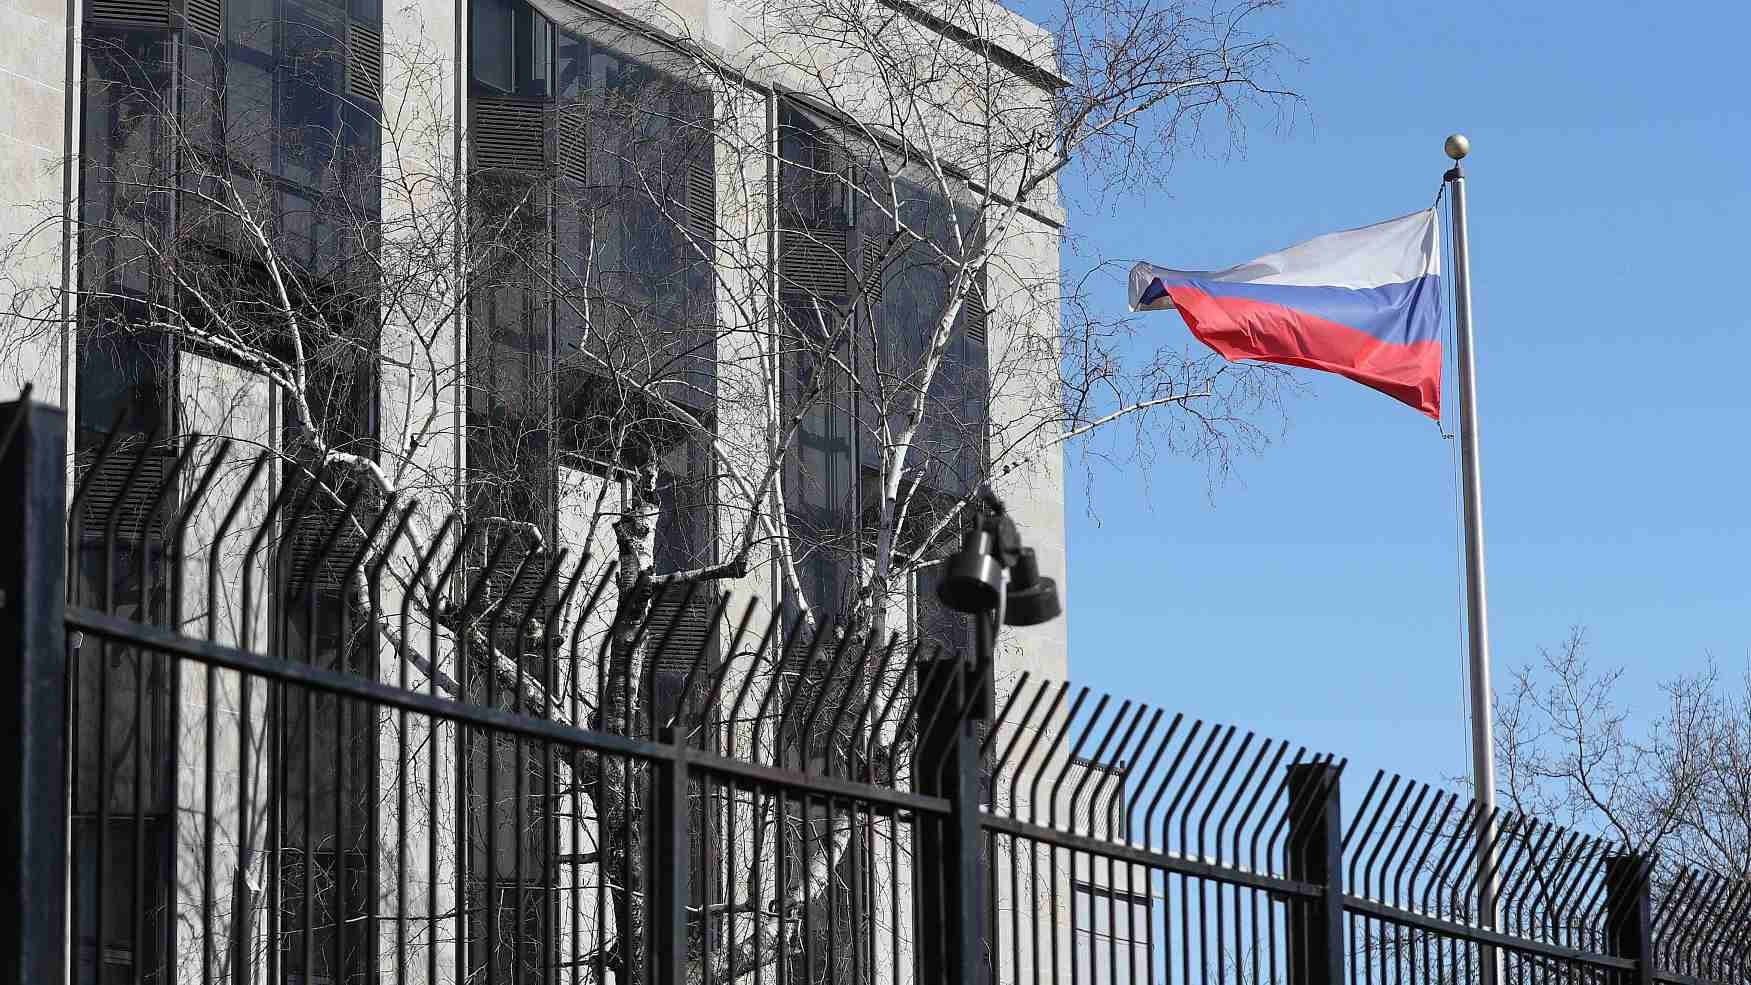 Russia expels 2 German diplomats in tit-for-tat retaliation over murder case